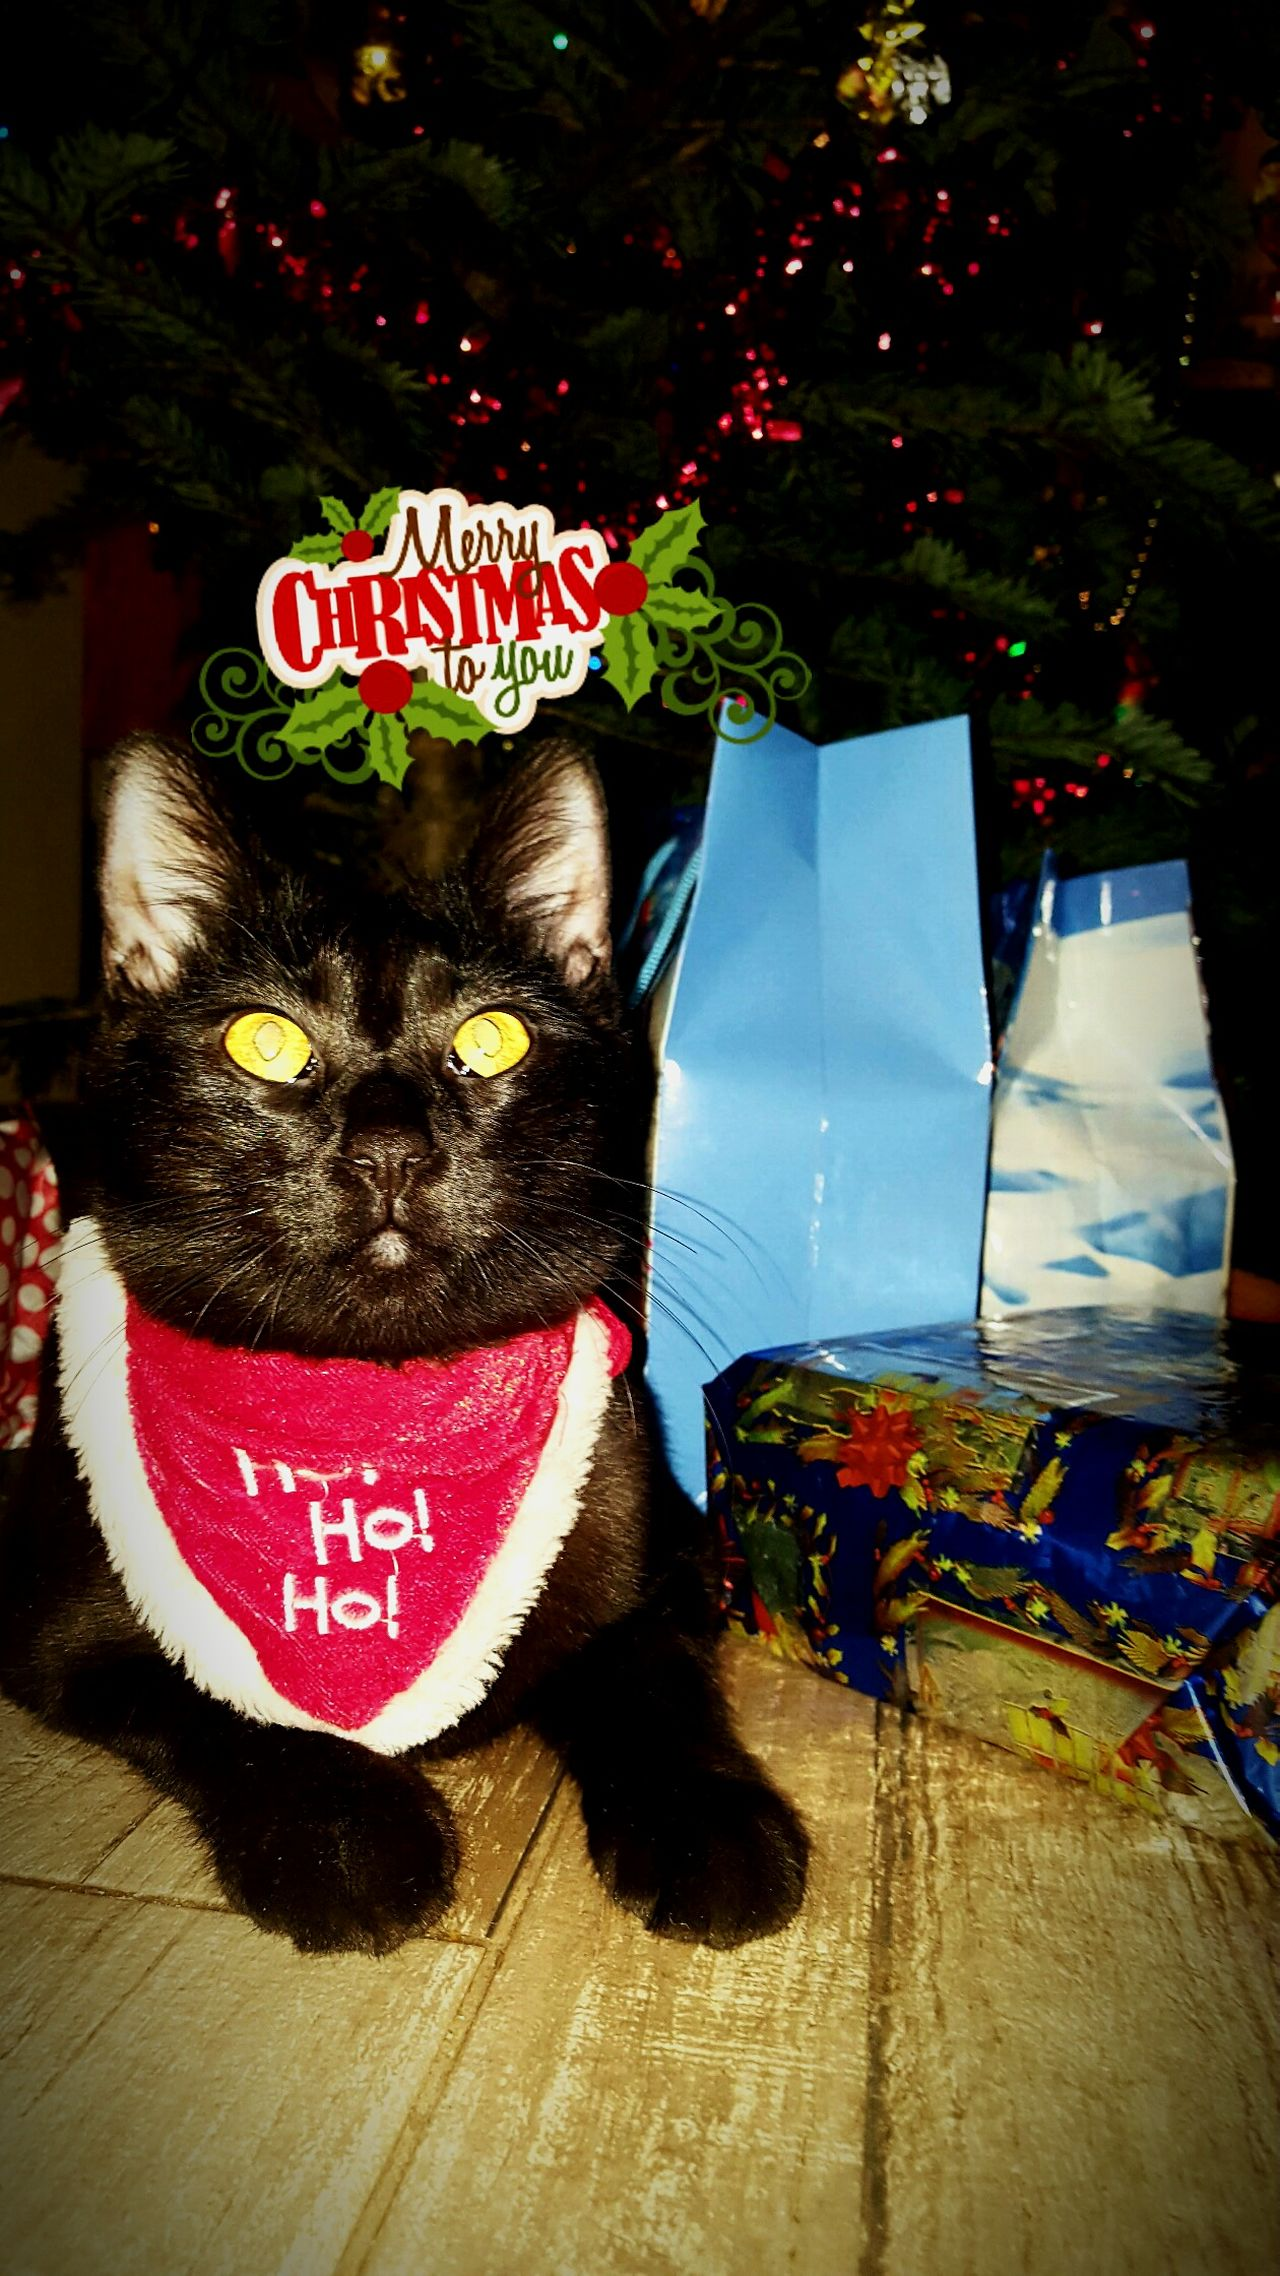 Handmade For You MrFranky Christmas Tradition Celebration Close-up Indoors  Christmas Tree Cat Black Cat Ho Ho Ho ! Golden Red Tree Christmas Decoration Happy Holidays! Feline Pets Looking At Camera Multi Colored Snow Sports